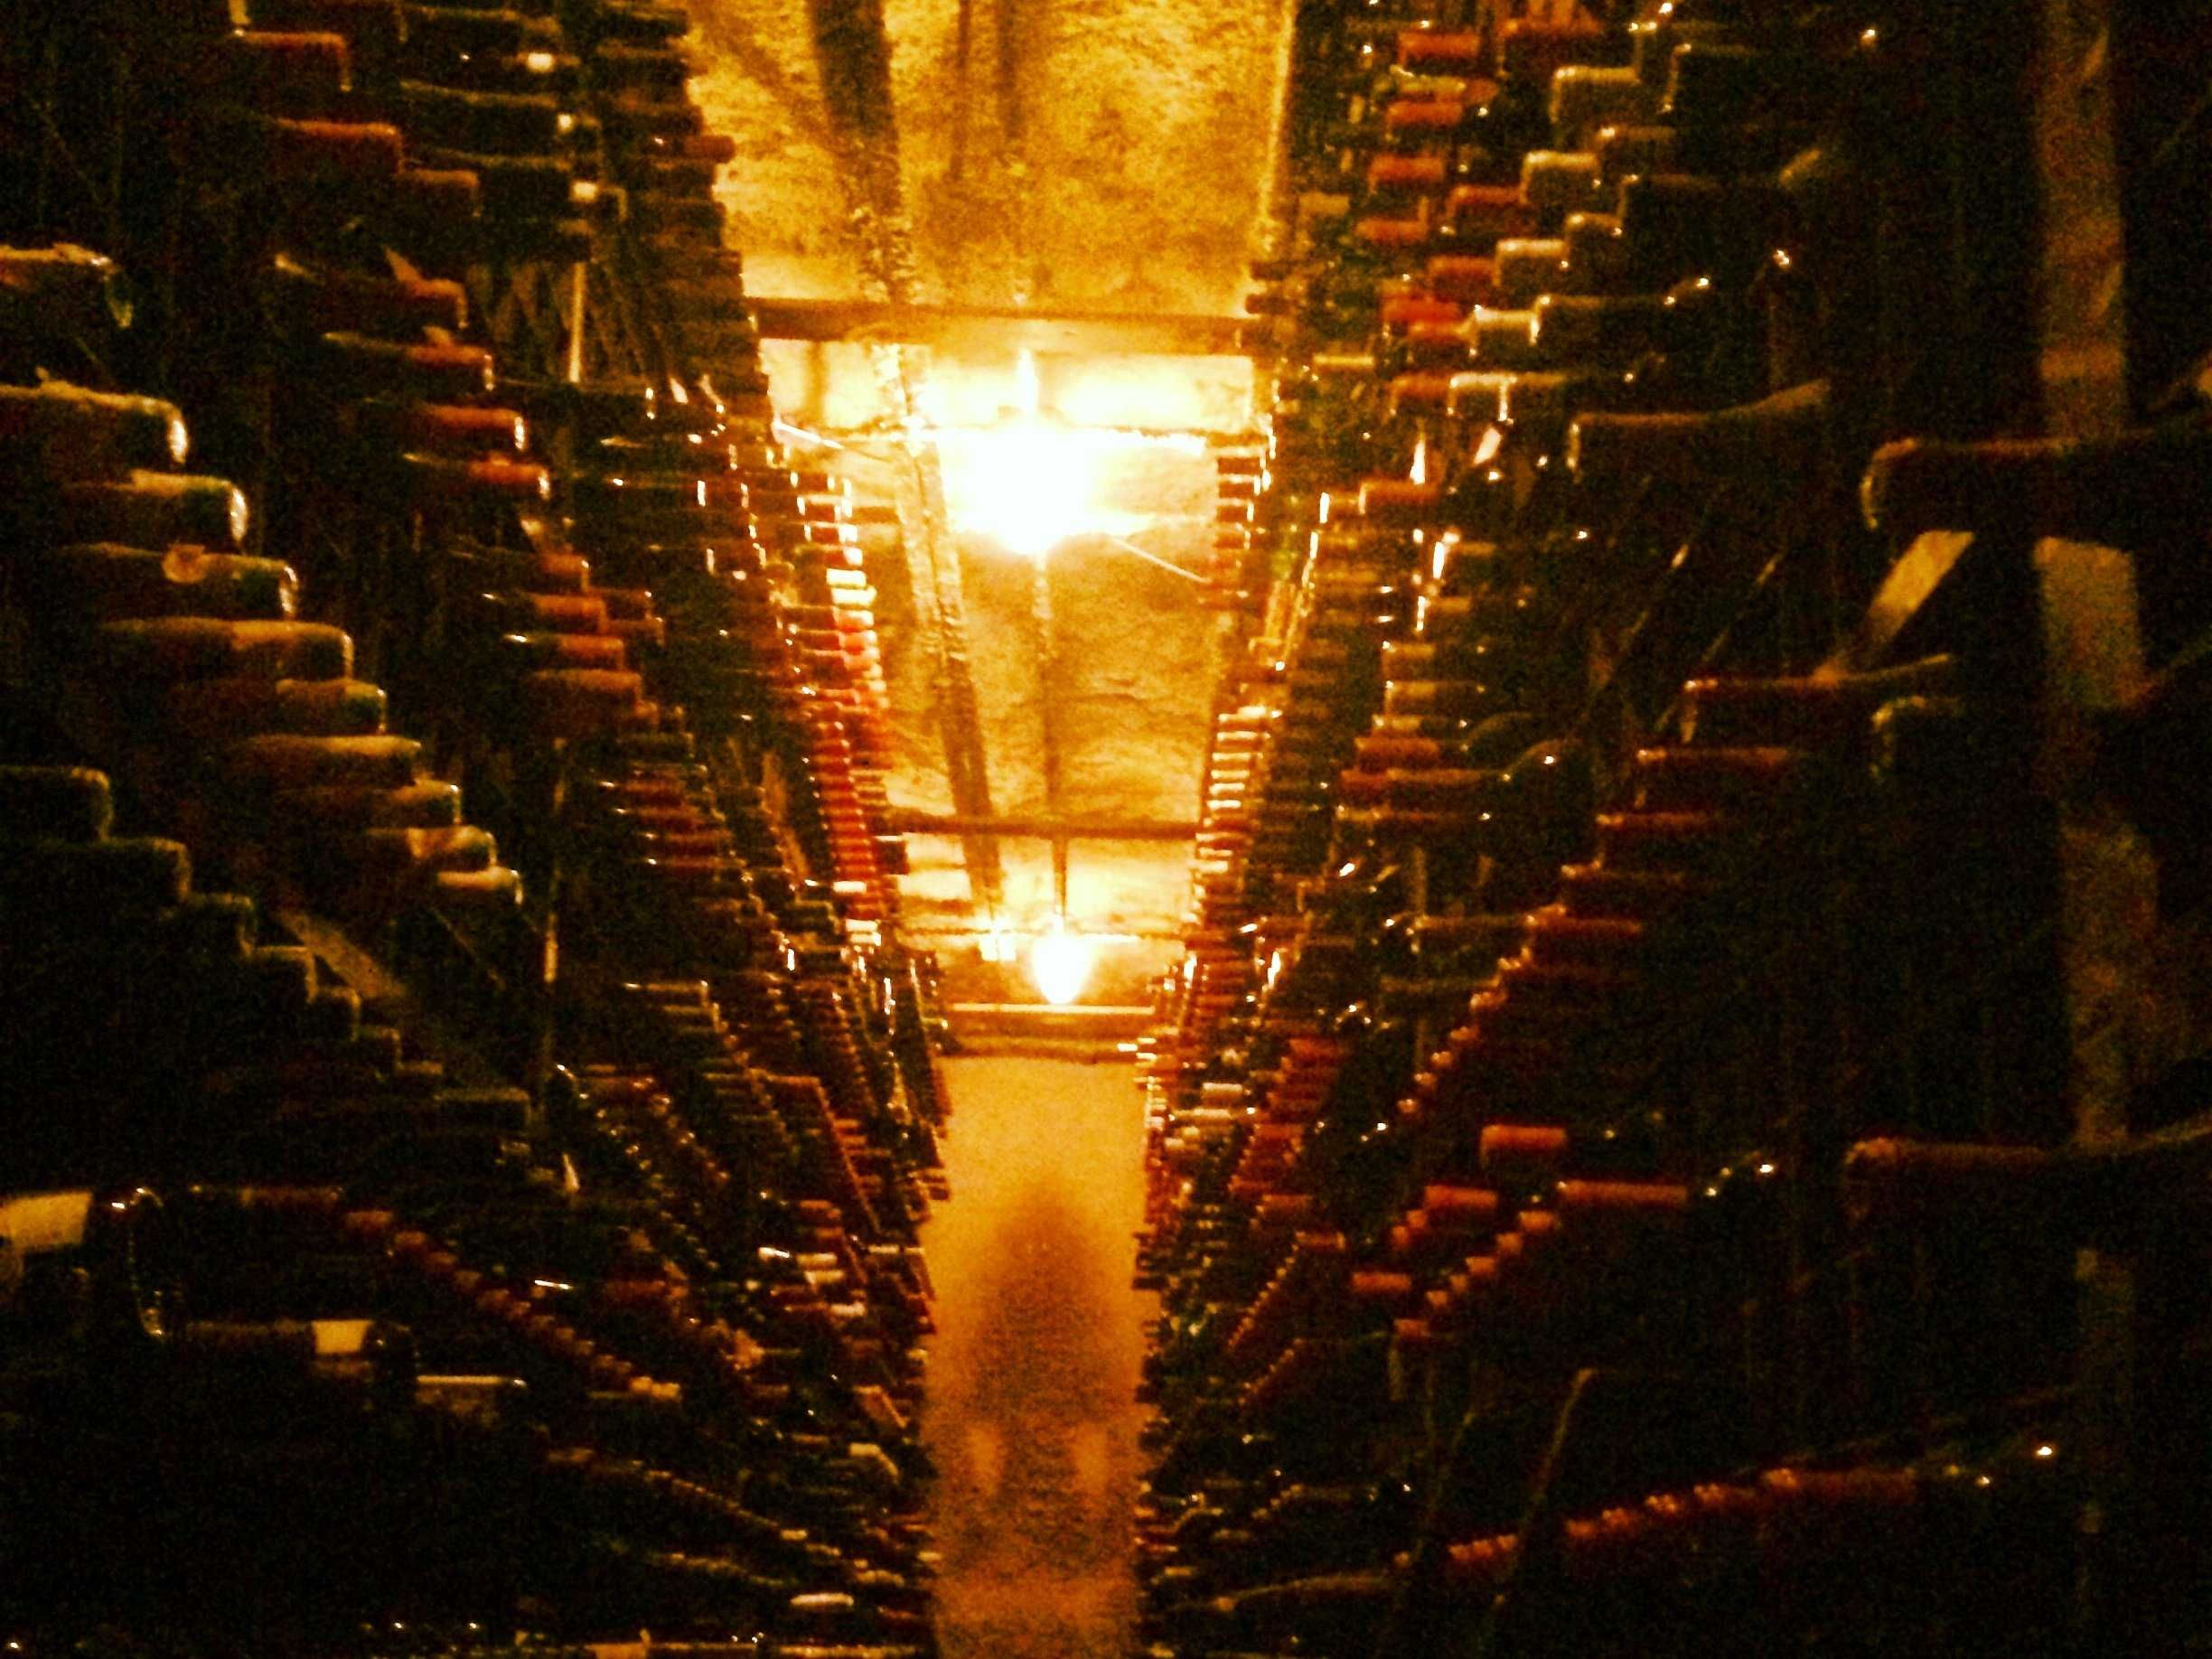 Bern's Steakhouse in Tampa, Fl. has the largest wine cellar in the world.